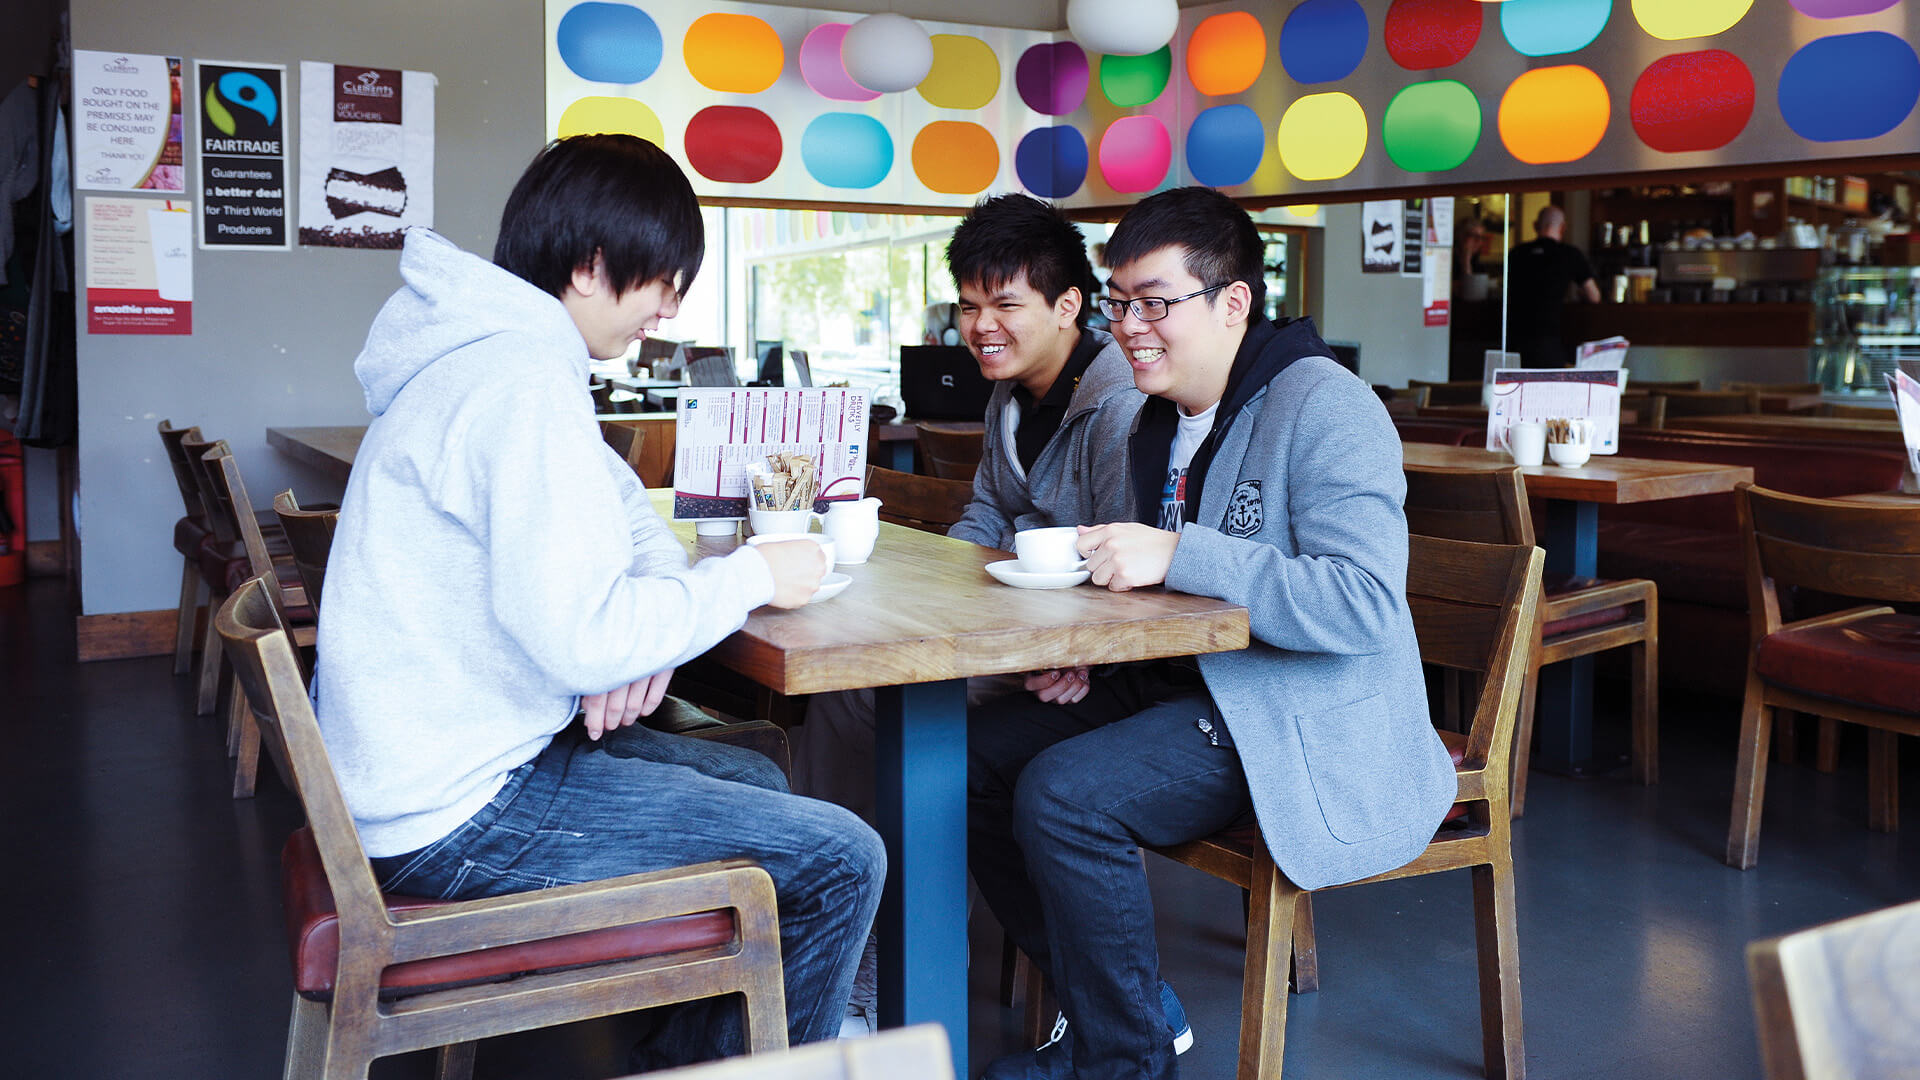 Students drinking coffee at Clements cafe on-campus at Queen's University Belfast